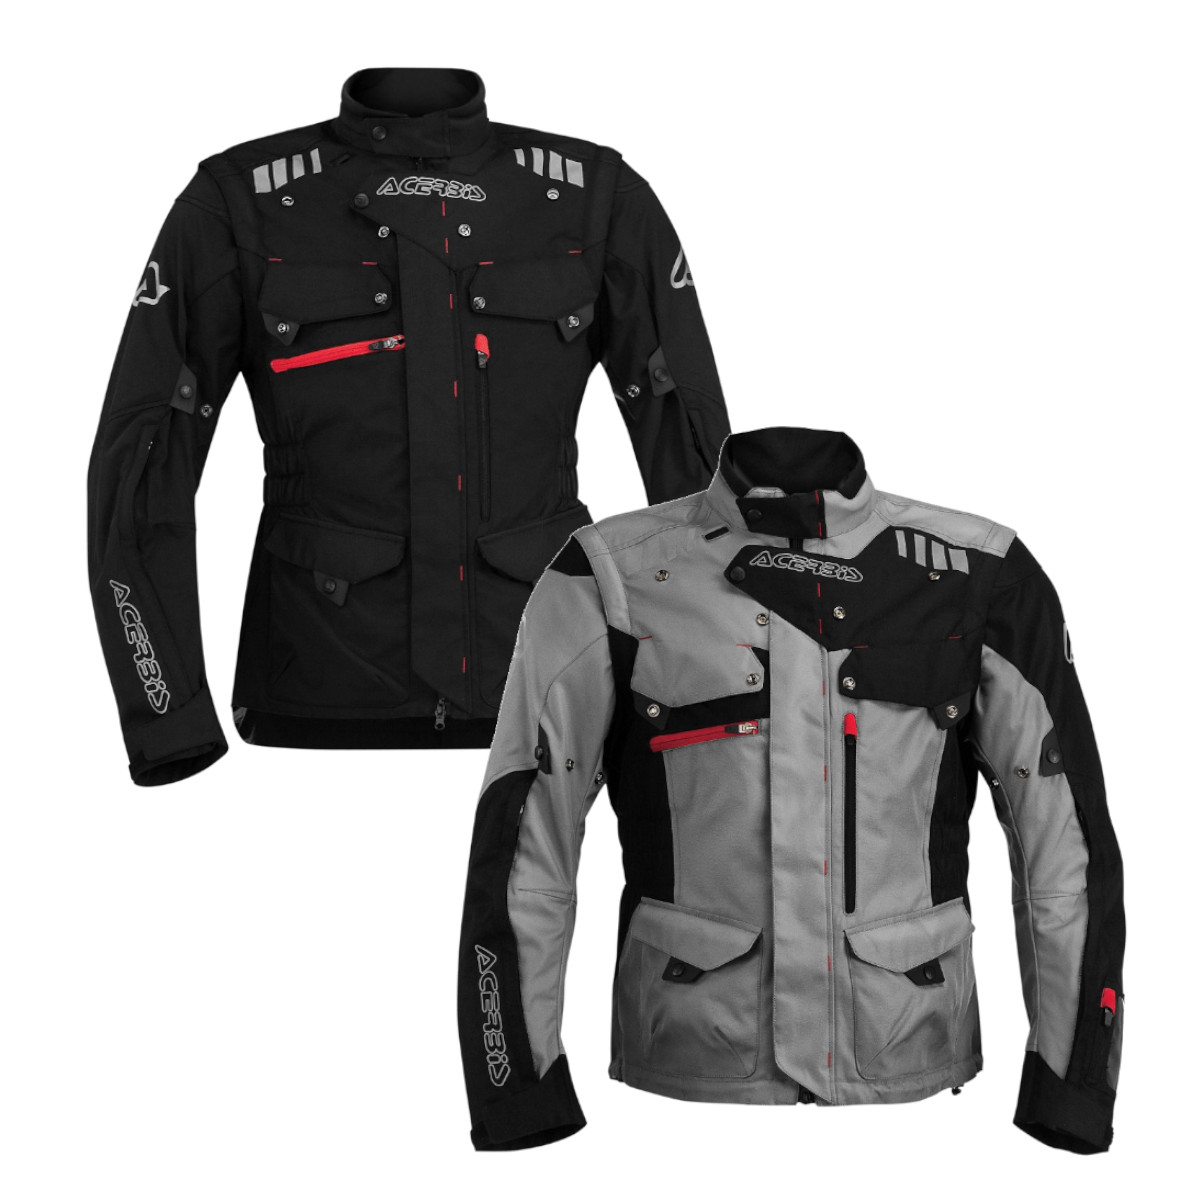 ACERBIS ADVENTURE JACKET ( 2 items )